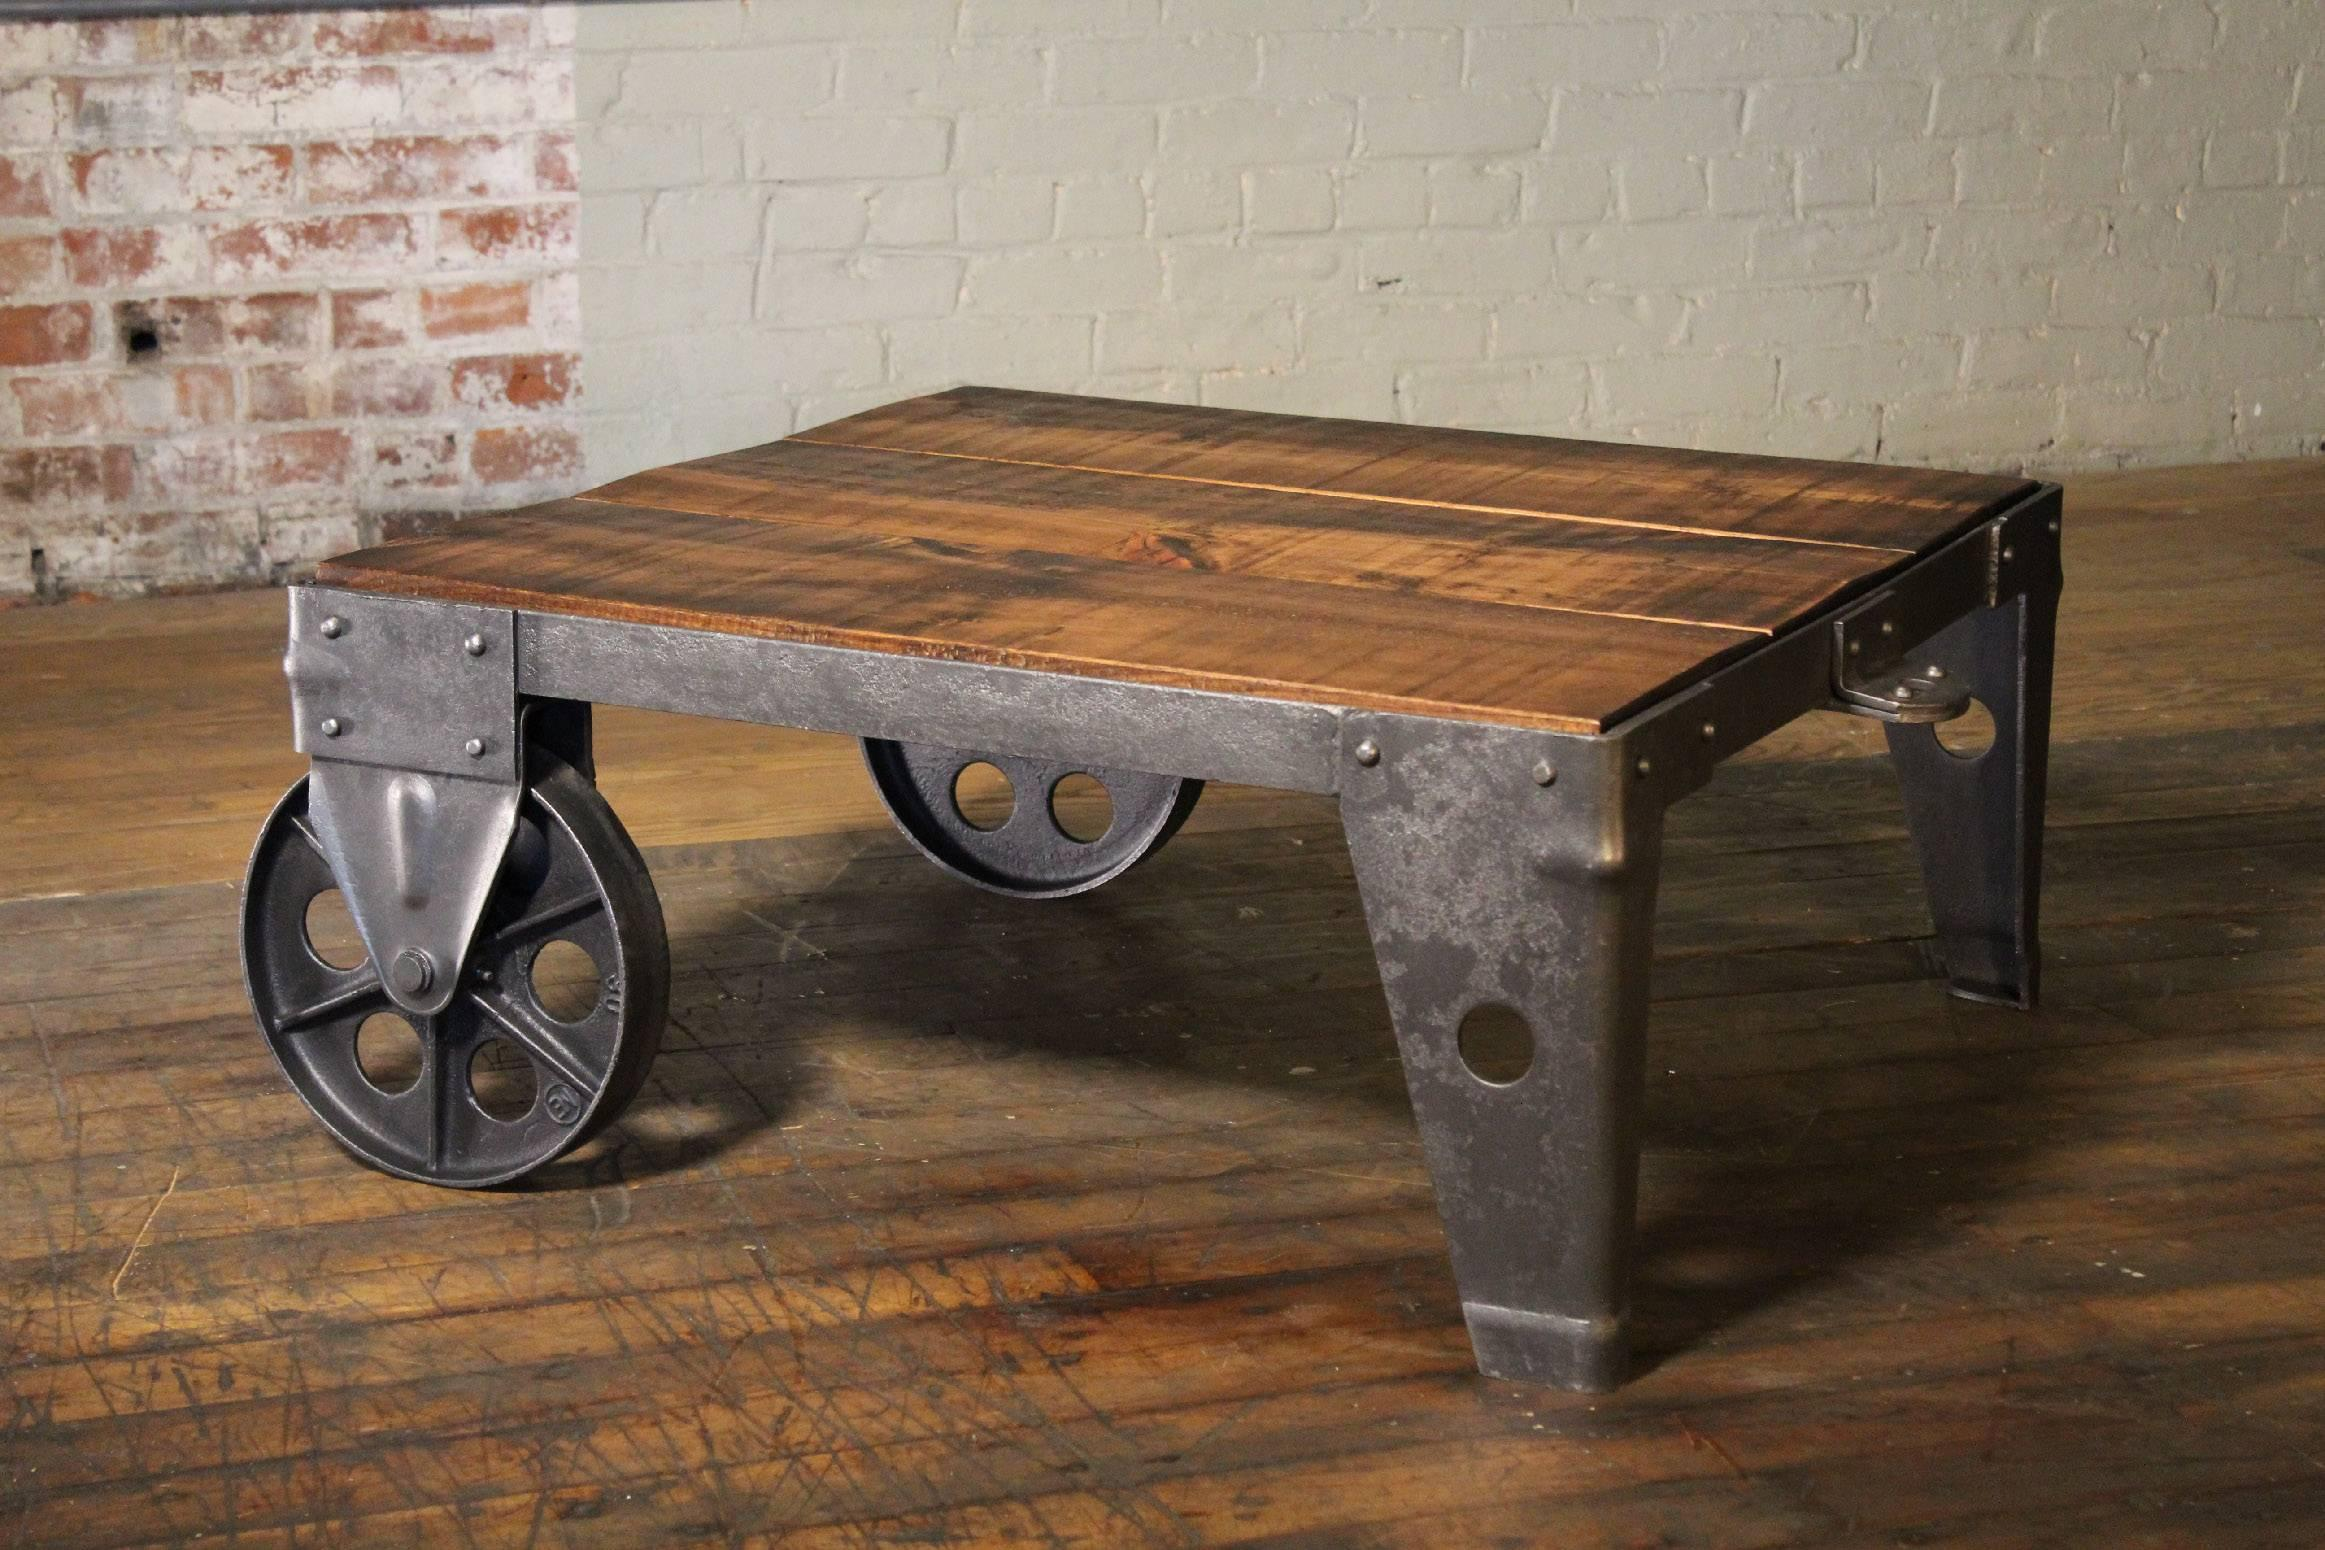 Authentic, Original Vintage Industrial Modern Coffee Table Or Cart, Made  From Rough Sawn Pine